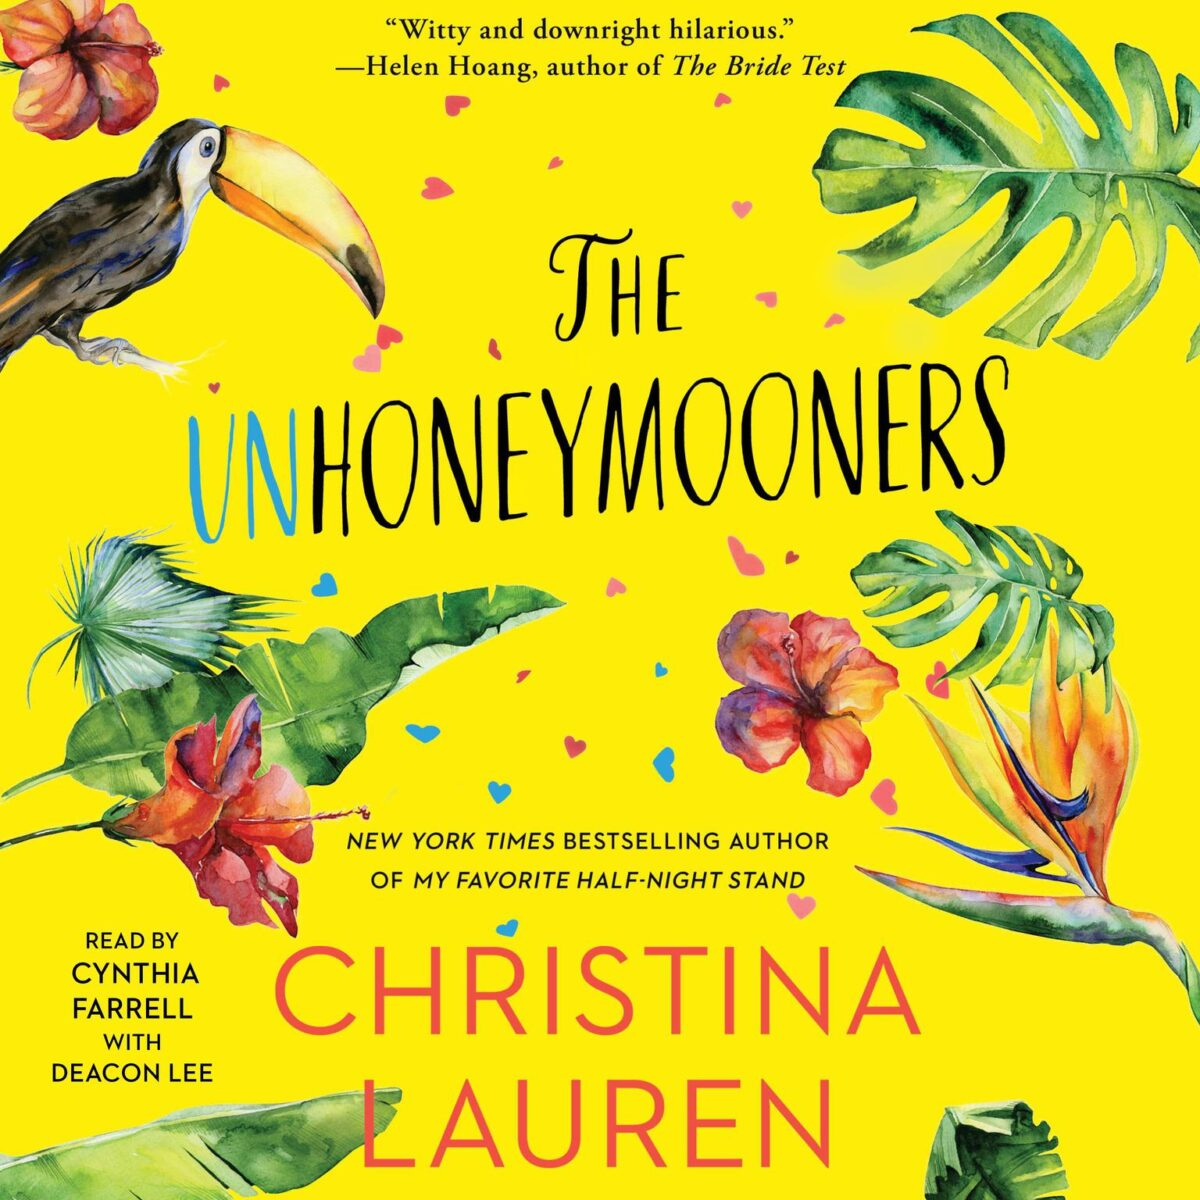 """Book cover for """"The Unhoneymooners"""" by Christina Lauren. The cover a bright yellow background with various tropical flora and fauna including a toucan, big green leaves, pink flowers. The text on the cover reads """"The Unhoneymooners"""" """"Christina Lauren"""" the top of the cover contains a review by Helen Hoang that reads """"Witty and downright hilarious."""""""